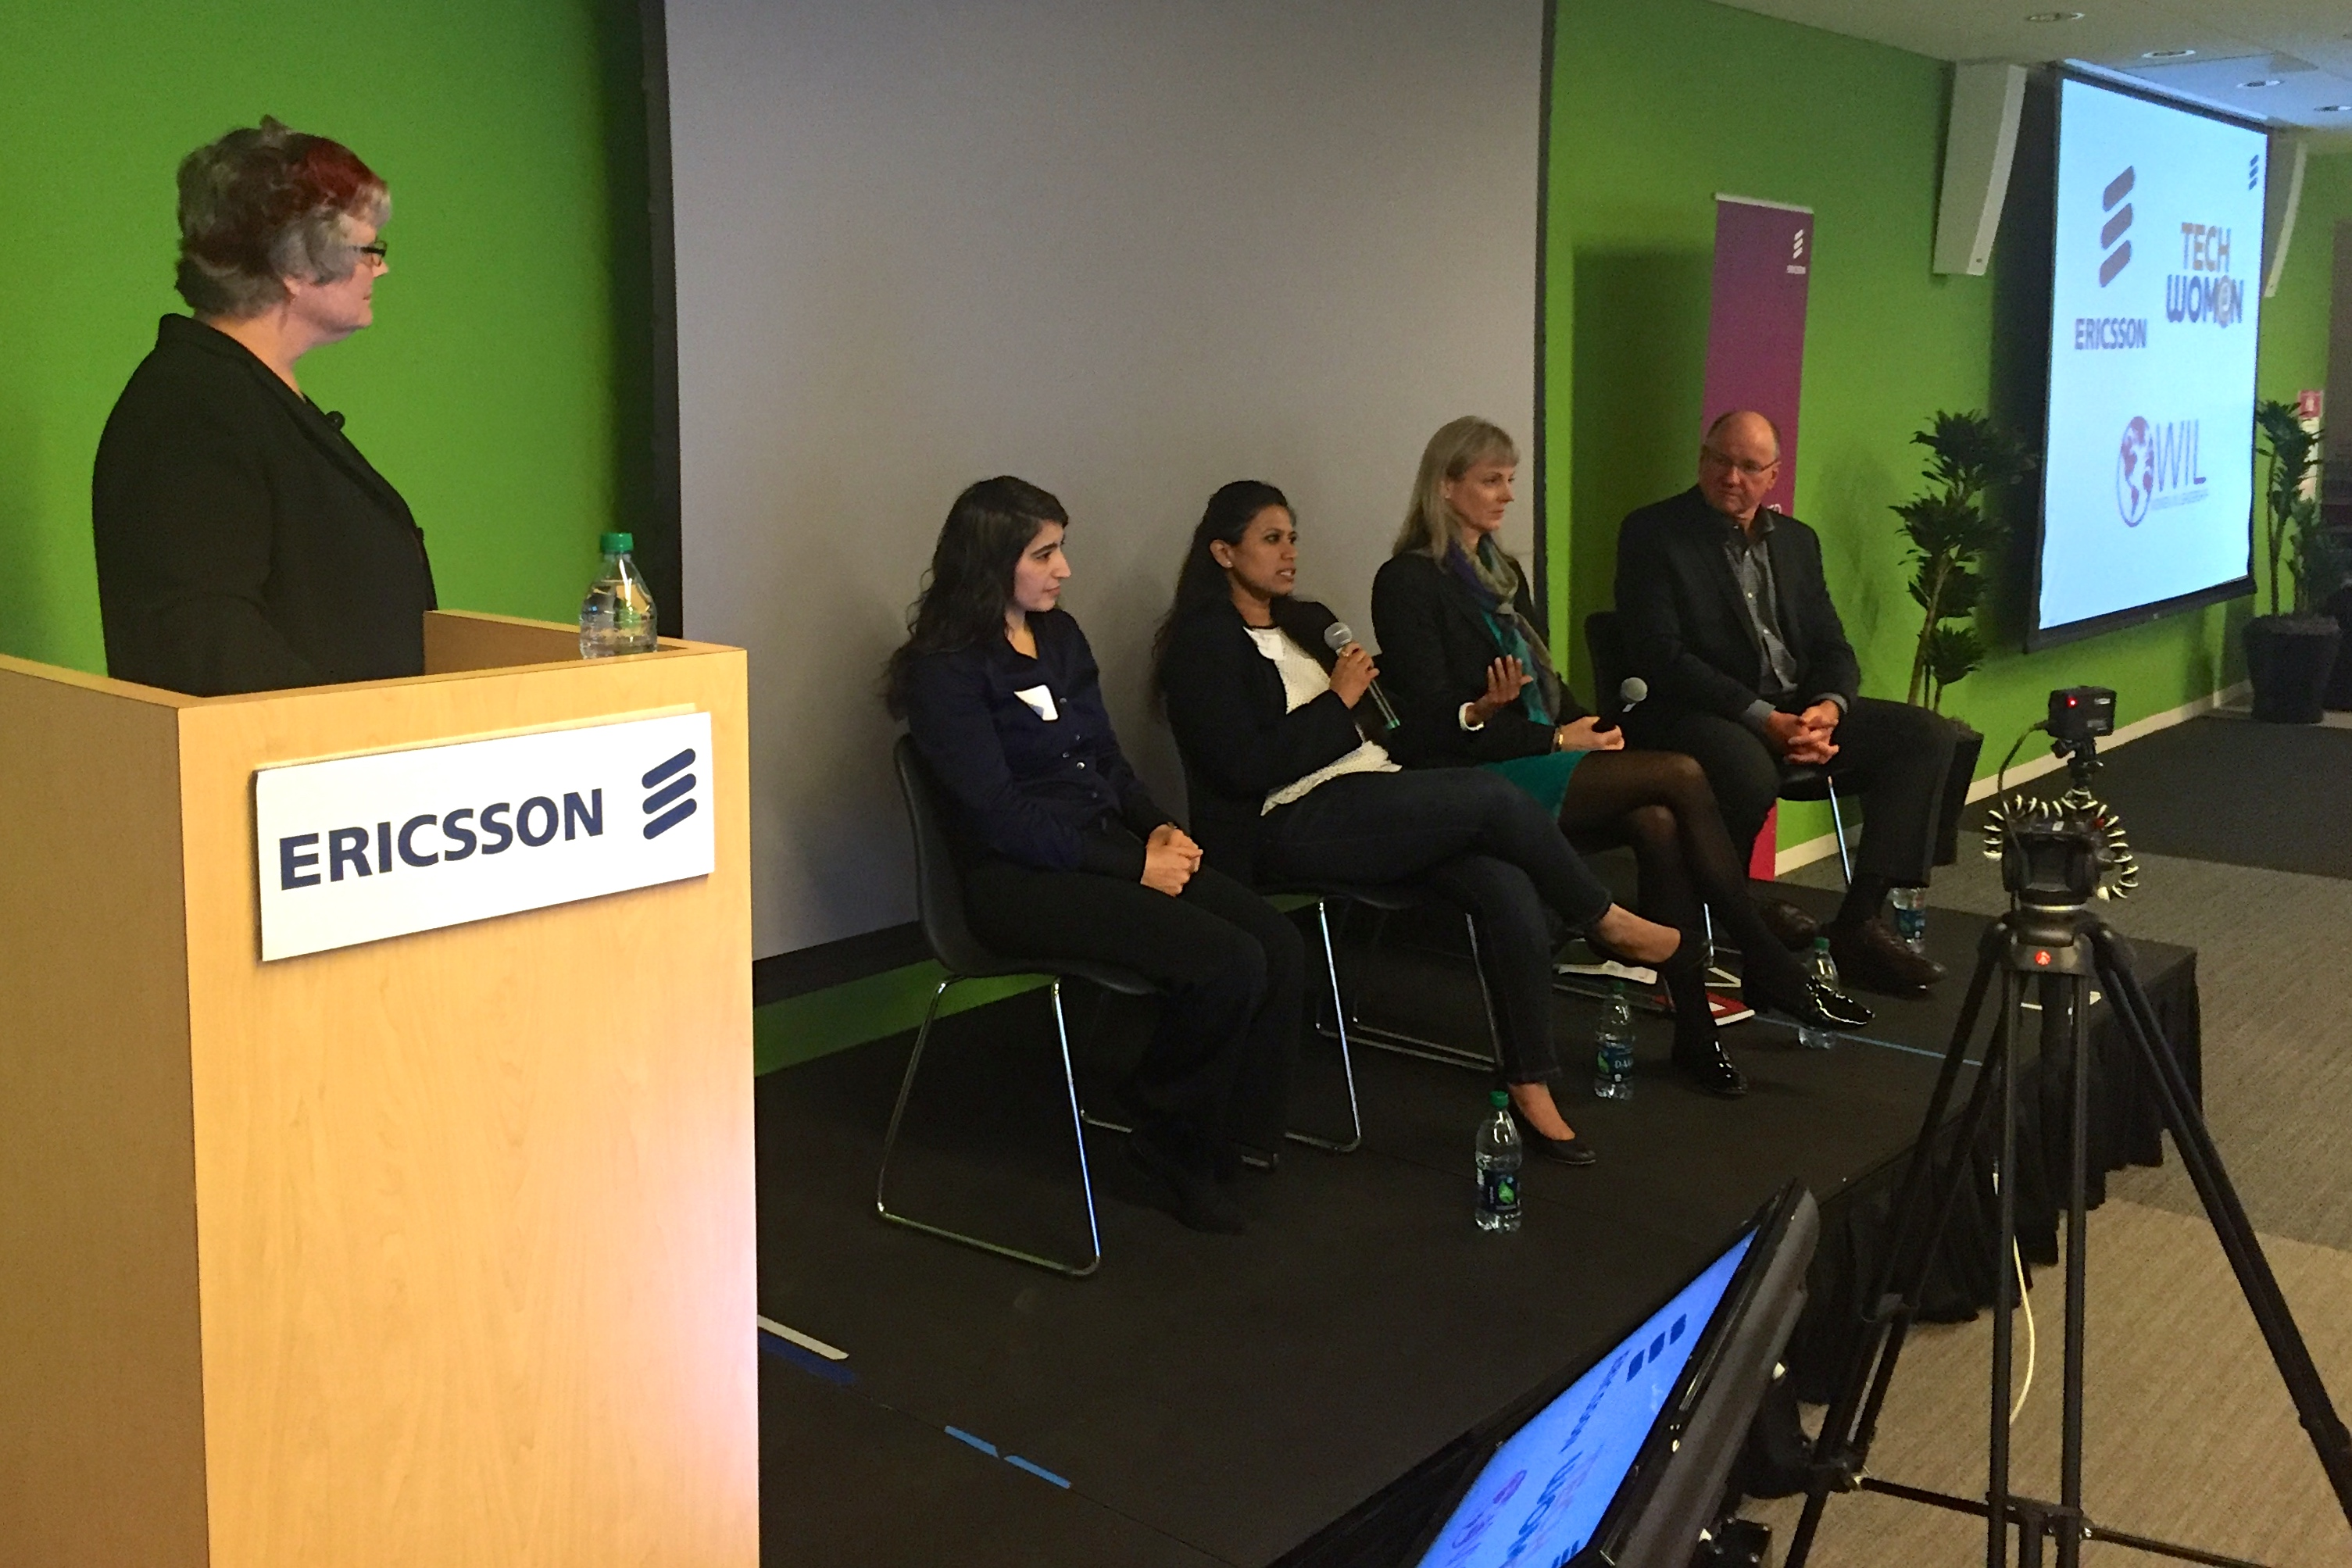 Katy Dickinson, TechWomen Alumnae Council Panel on Best Mentoring Practices, at Ericsson, March 2016